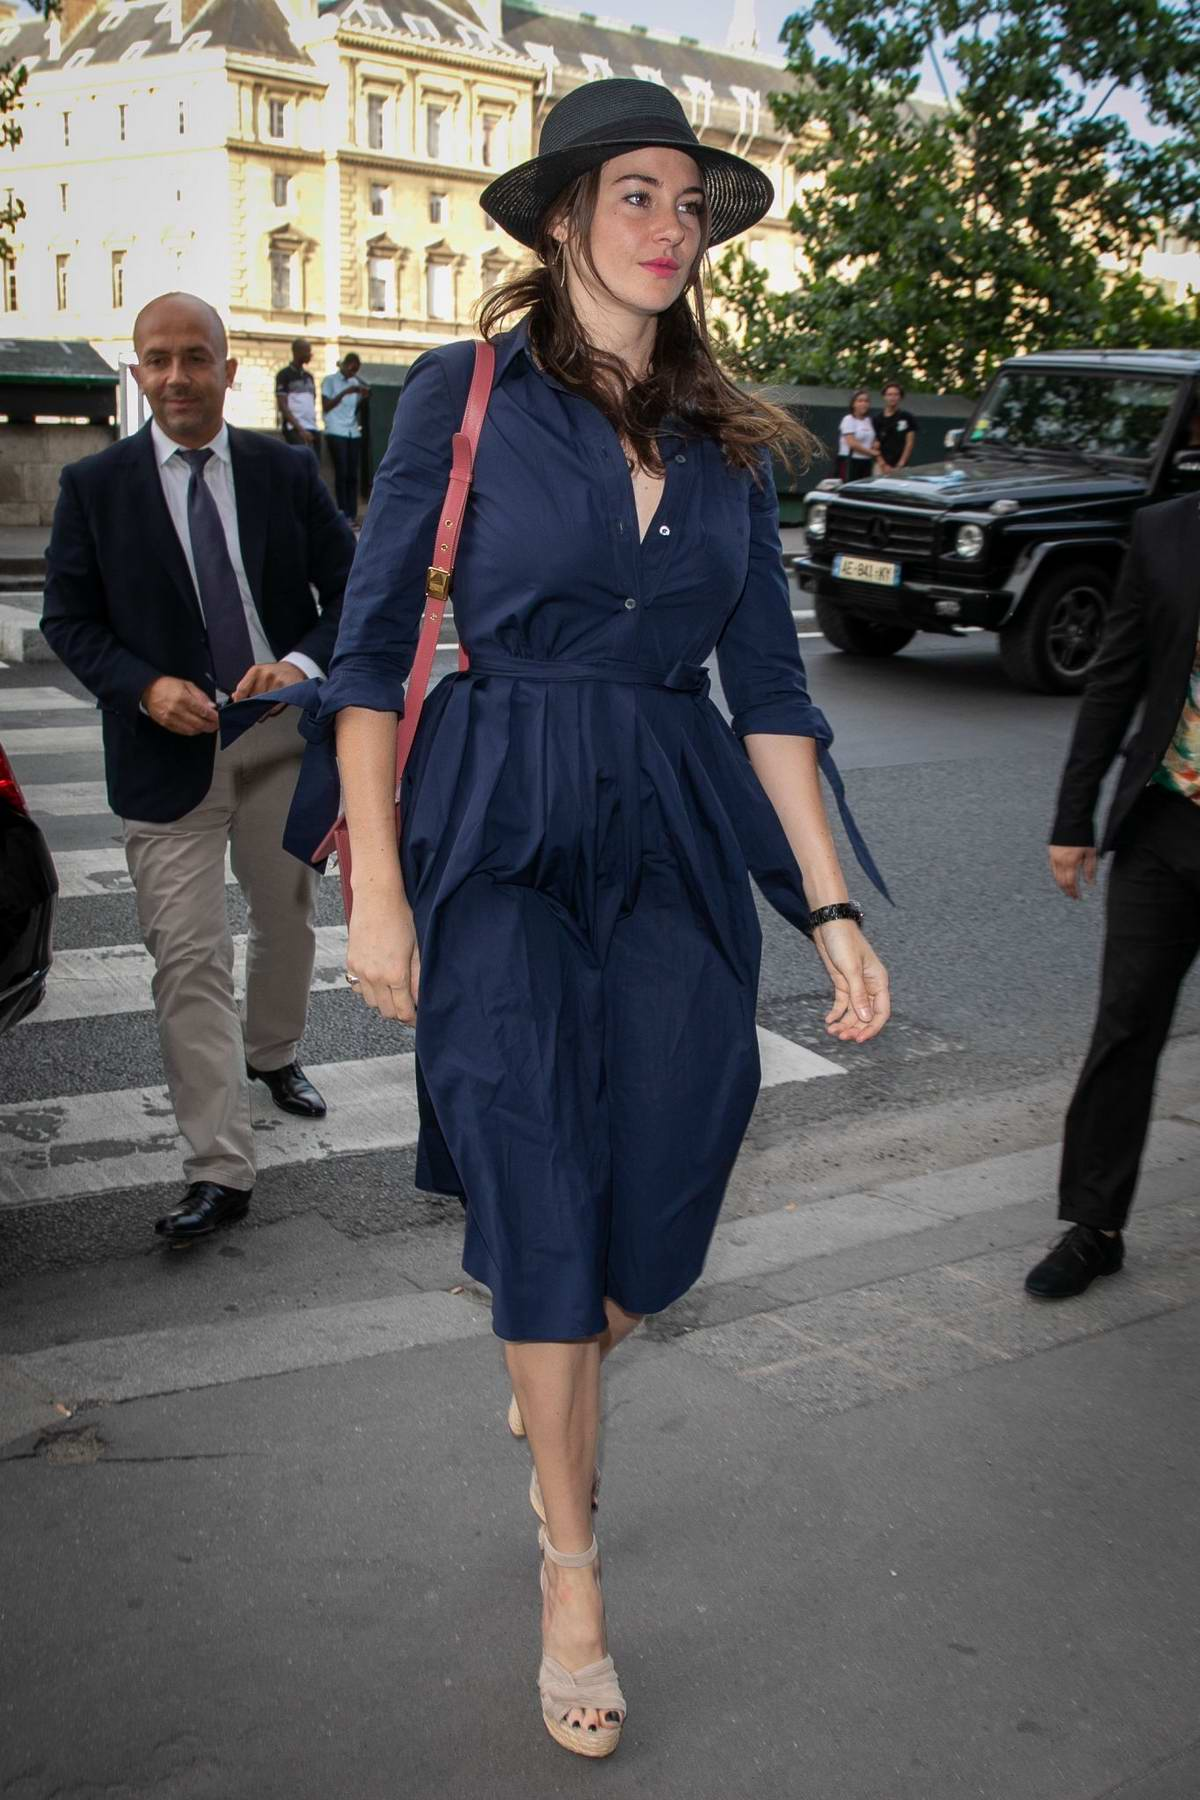 Shailene Woodley looks chic in a navy blue dress as she arrives at the Laperouse restaurant in Paris, France